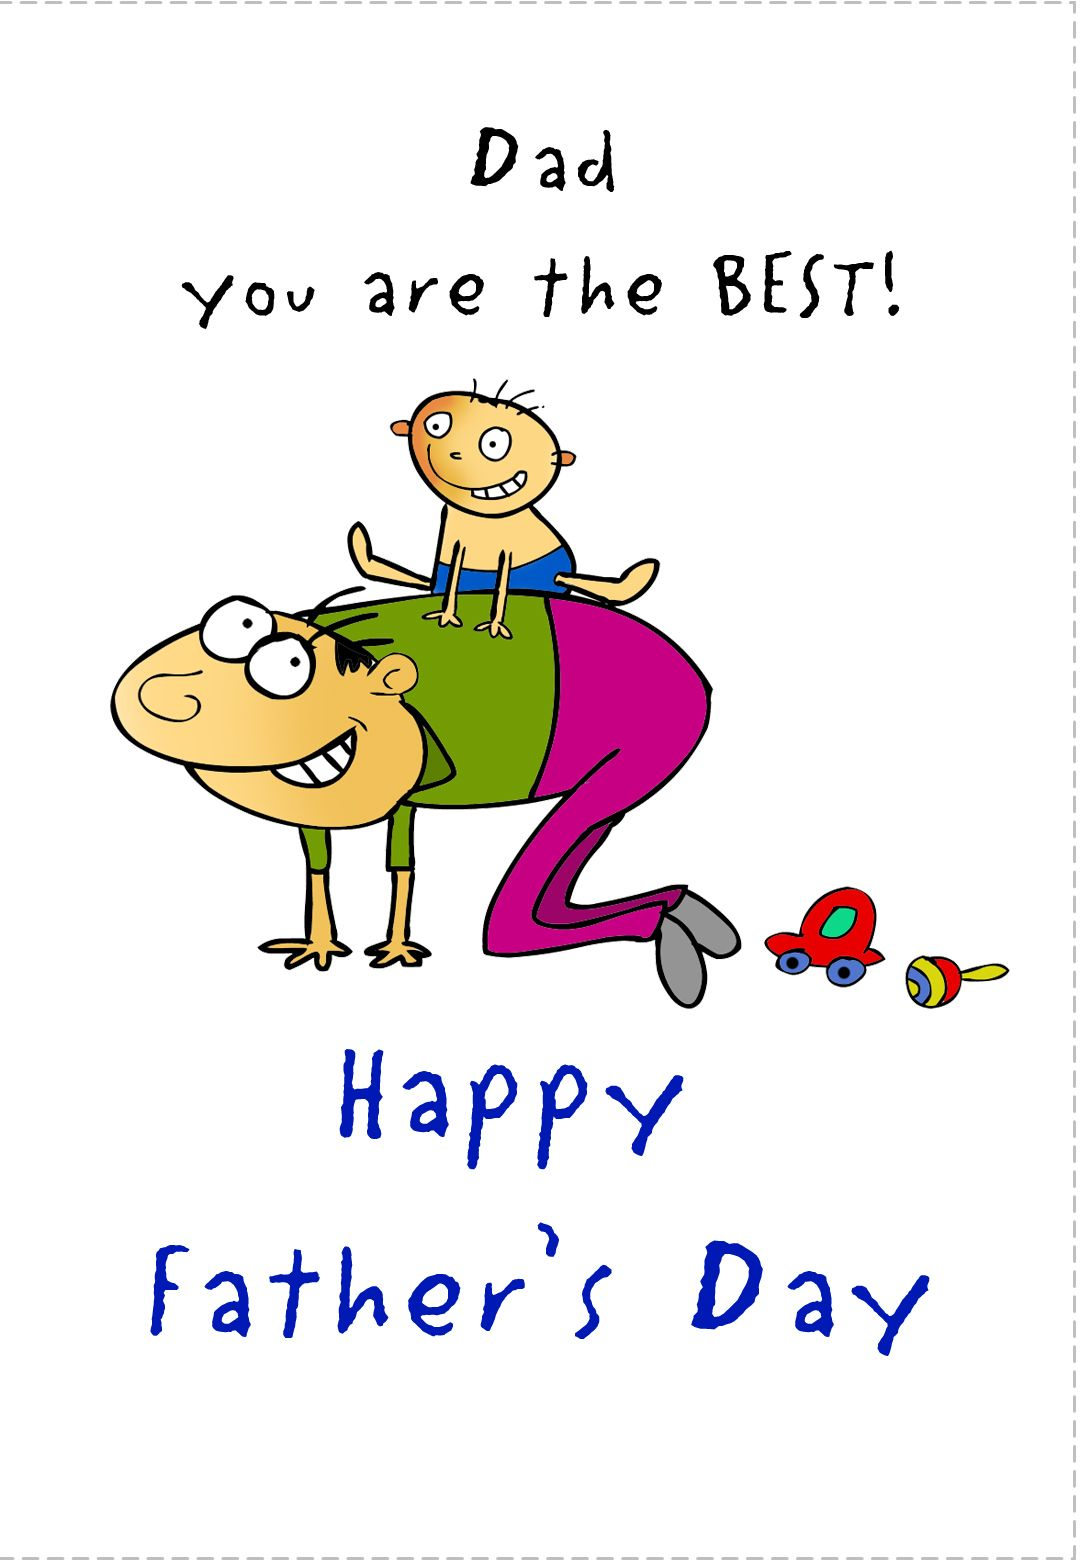 Fathersday Card Free Printable Customize Add Images And Text And Send Or Print For Free